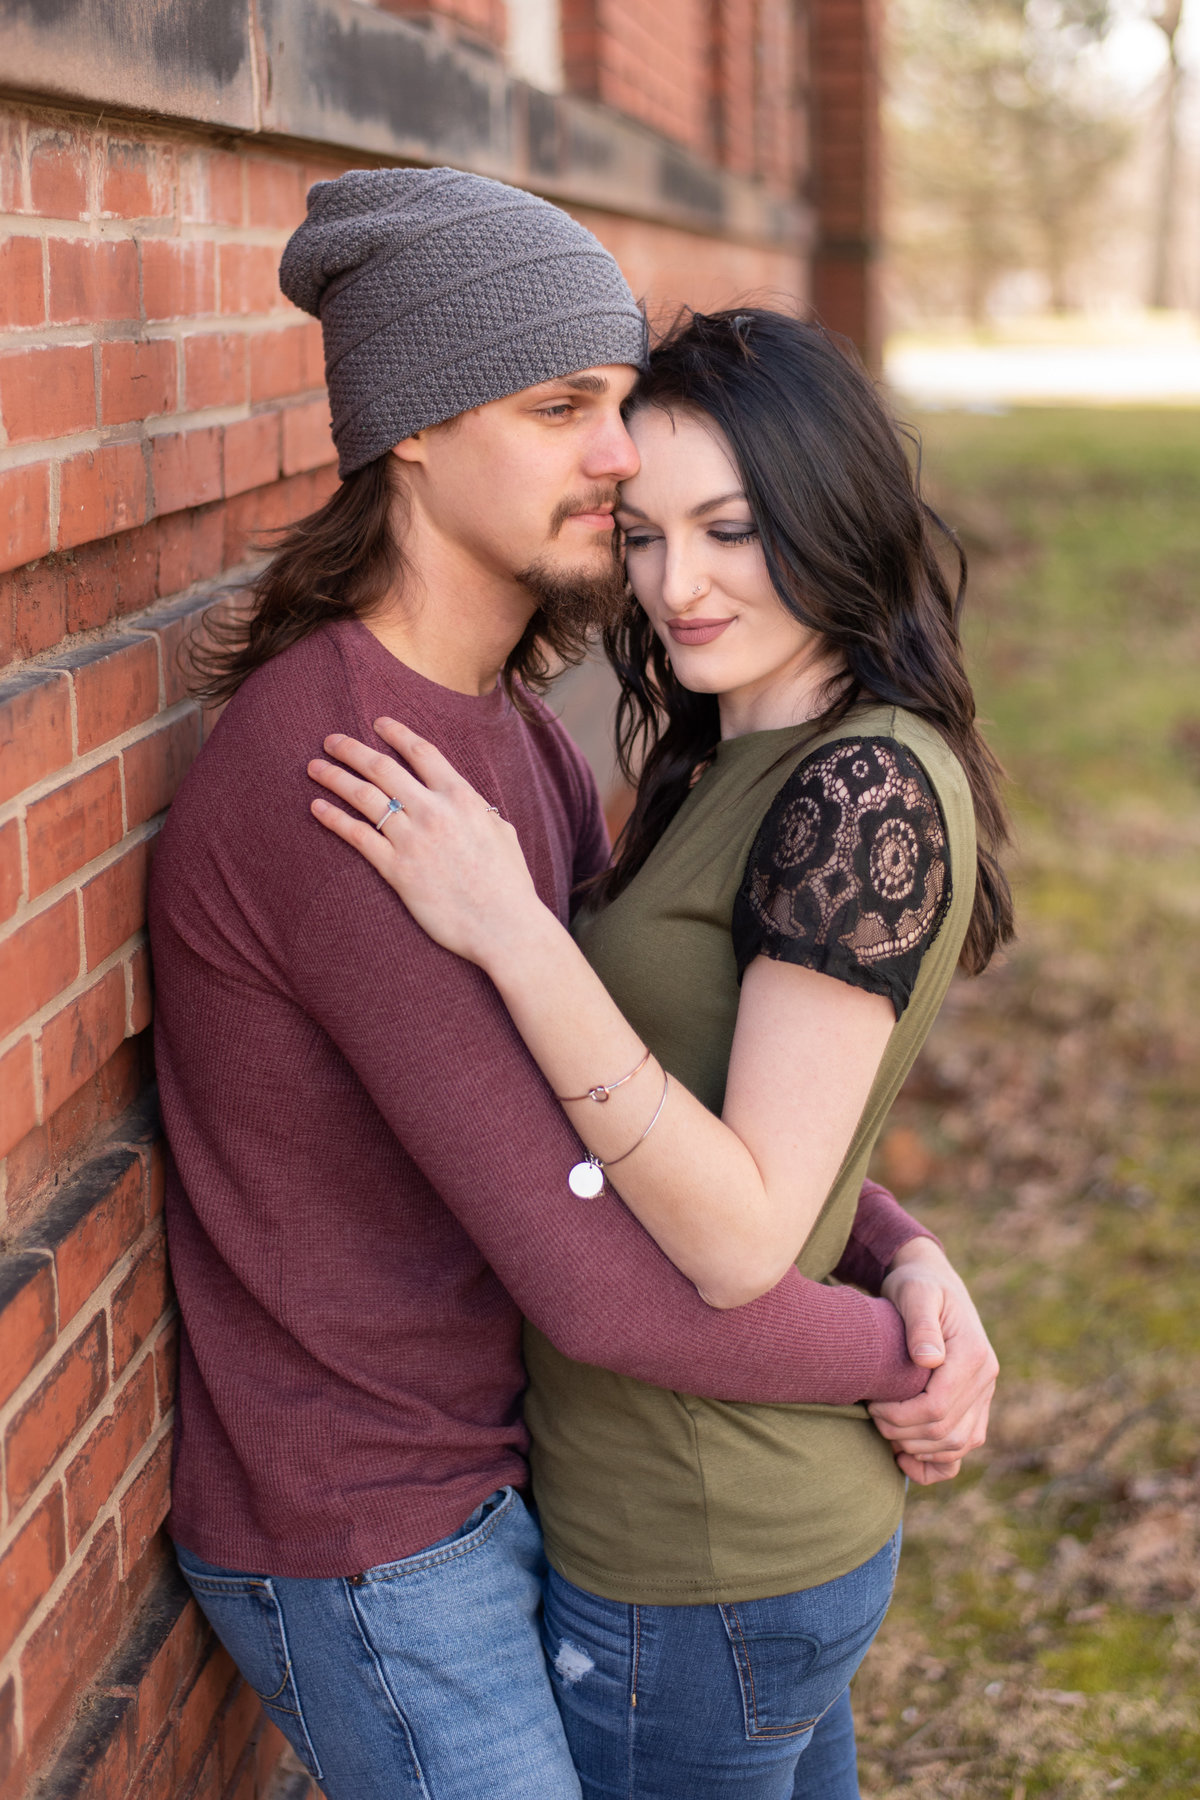 Young couple snuggling in embrace while leaned on brick wall